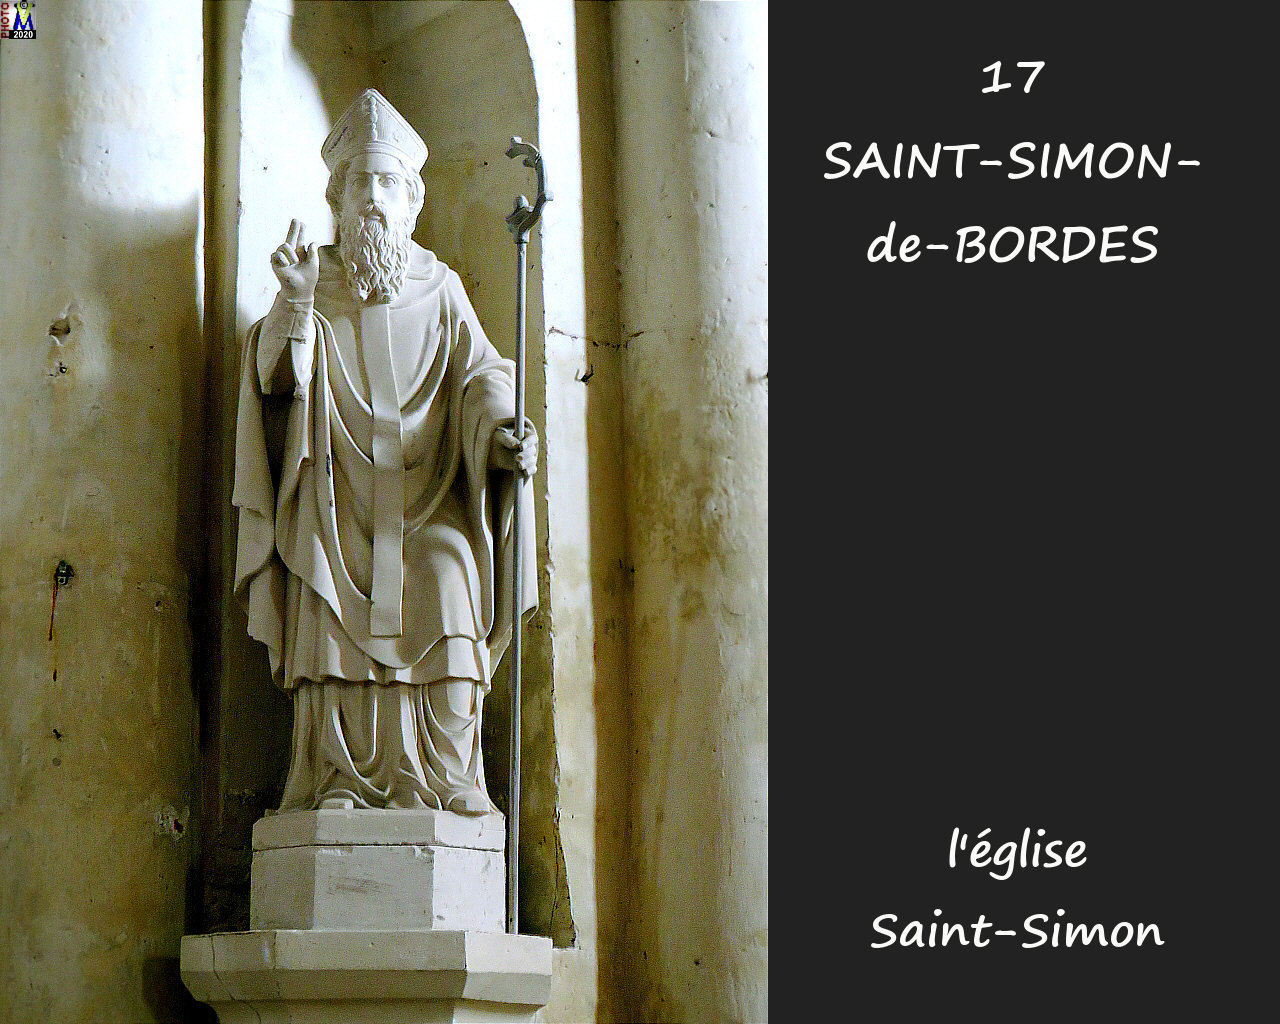 17StSIMON-BORDES_eglise_1156.jpg